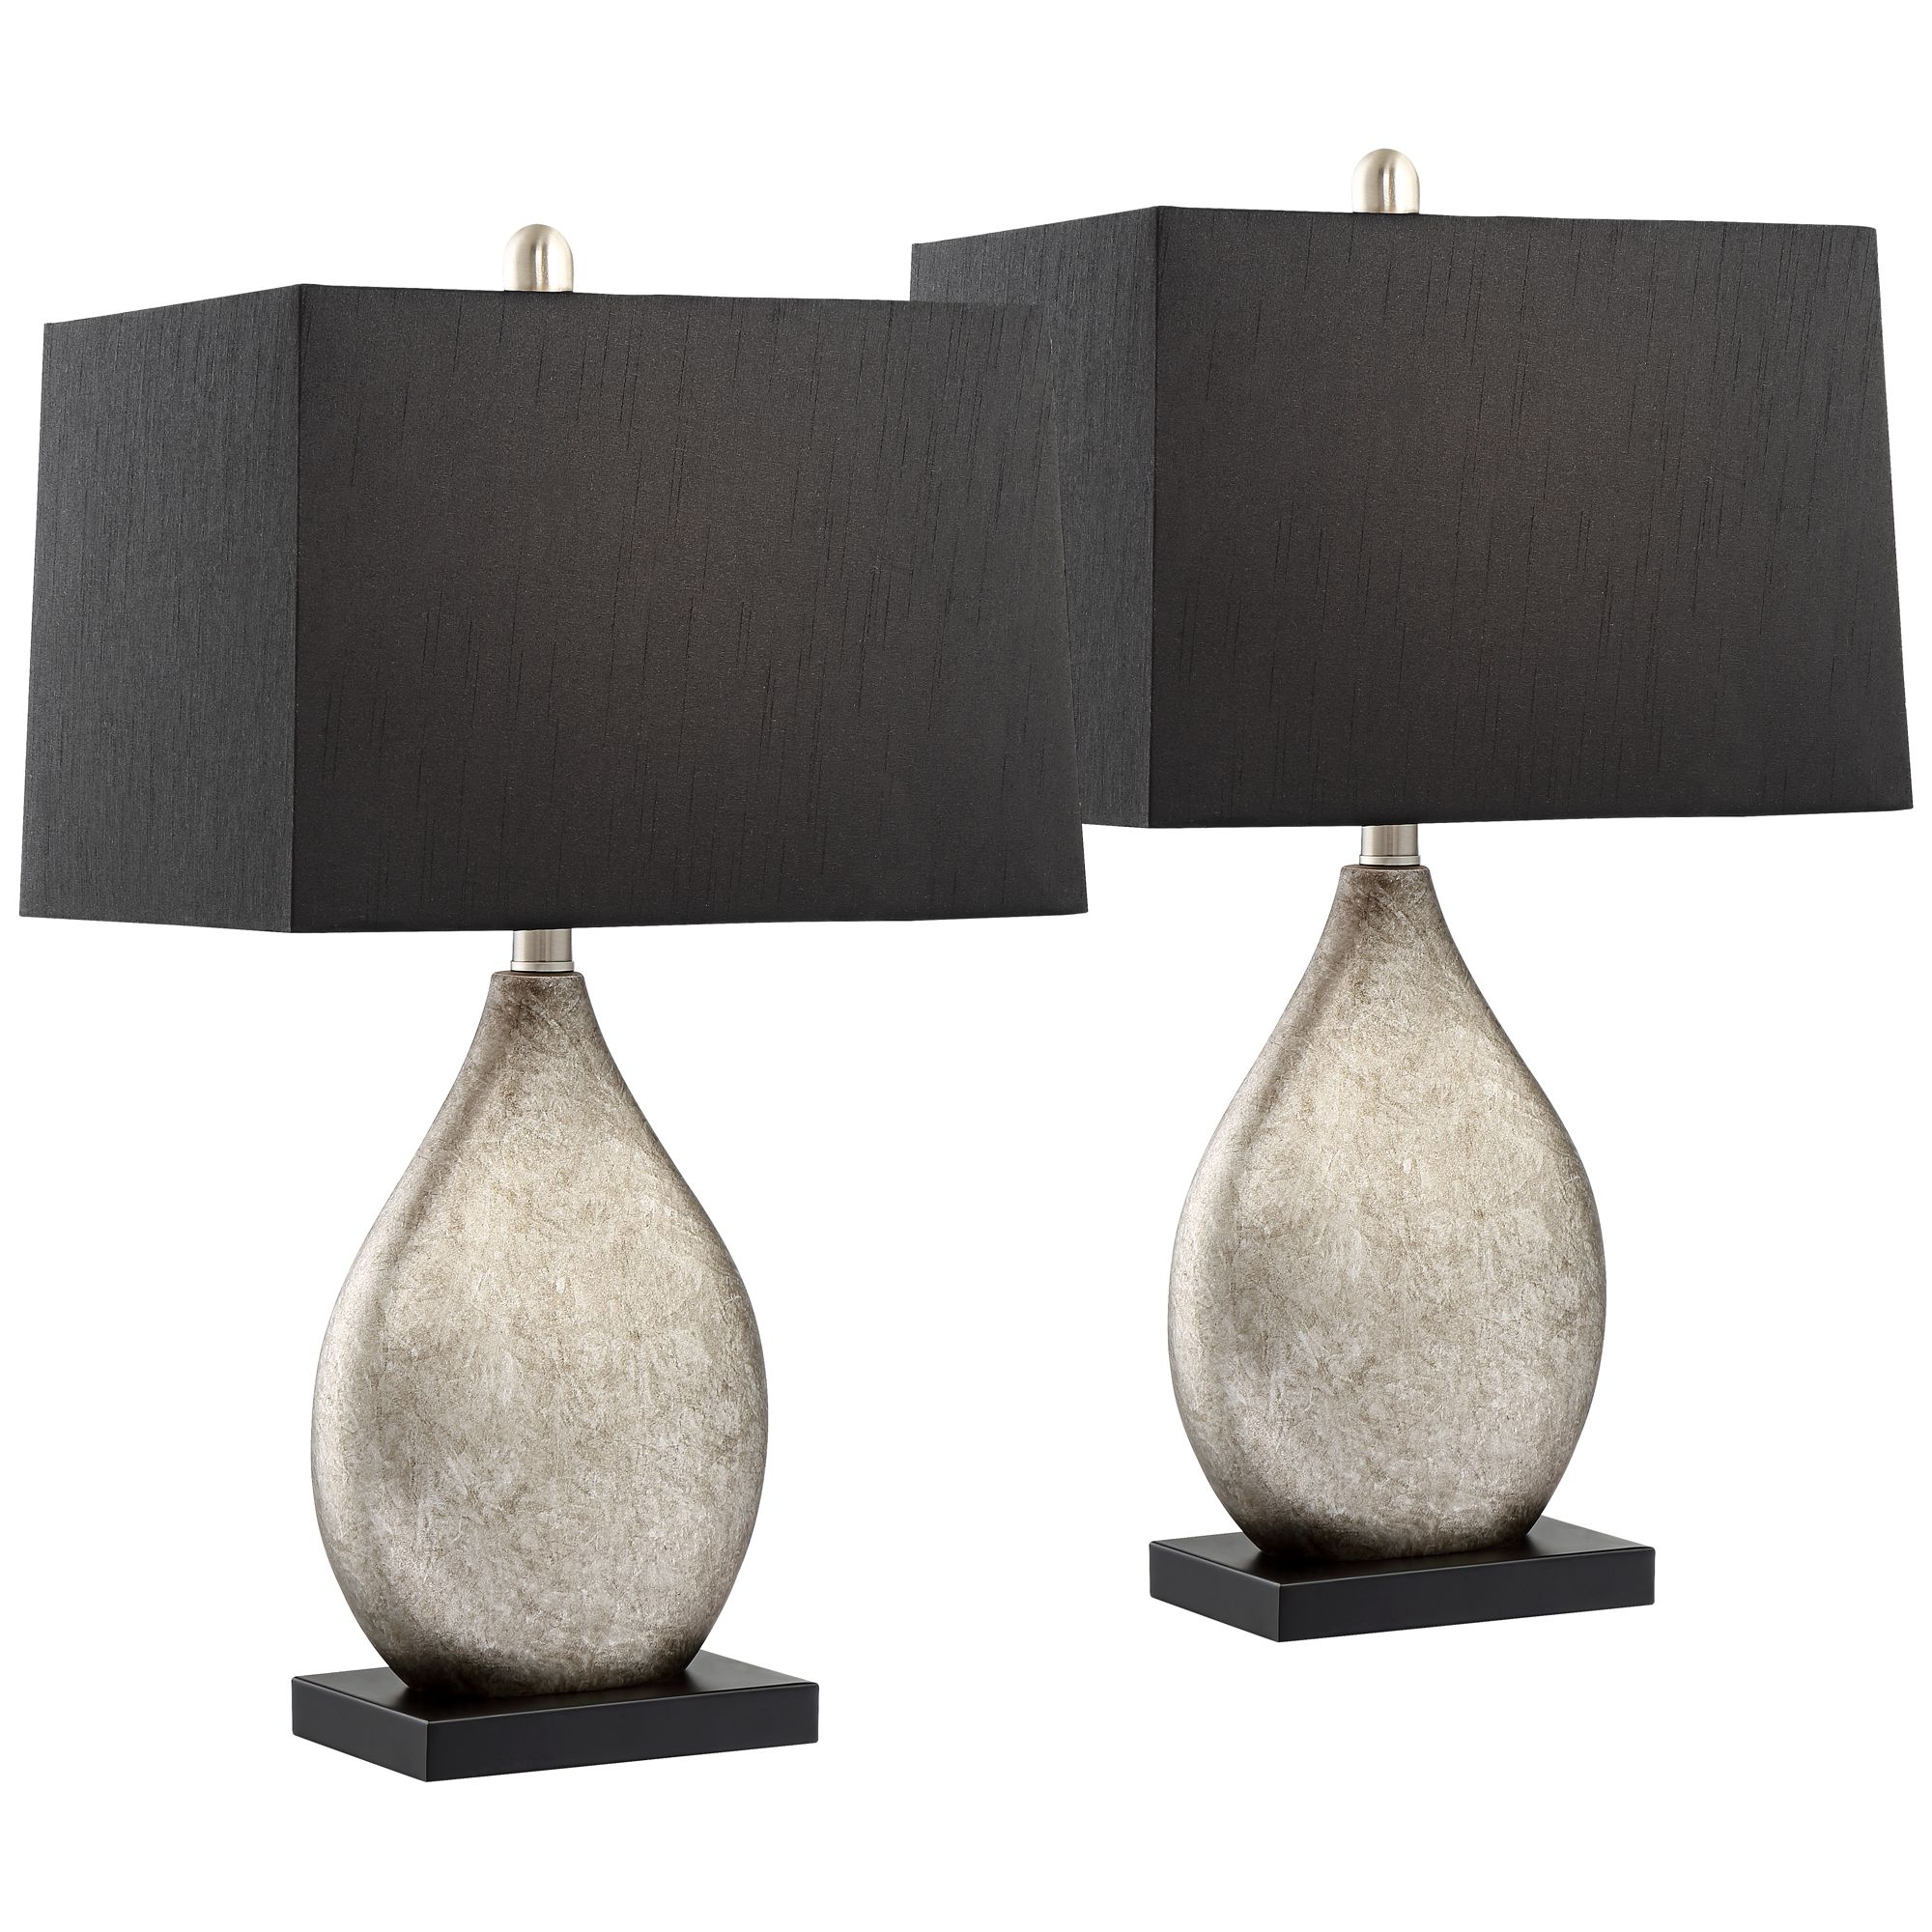 Regency Hill Modern Table Lamps Set Of 2 With Black Rectangular Shade For Living Room Family Bedroom Bedside Nightstand Office